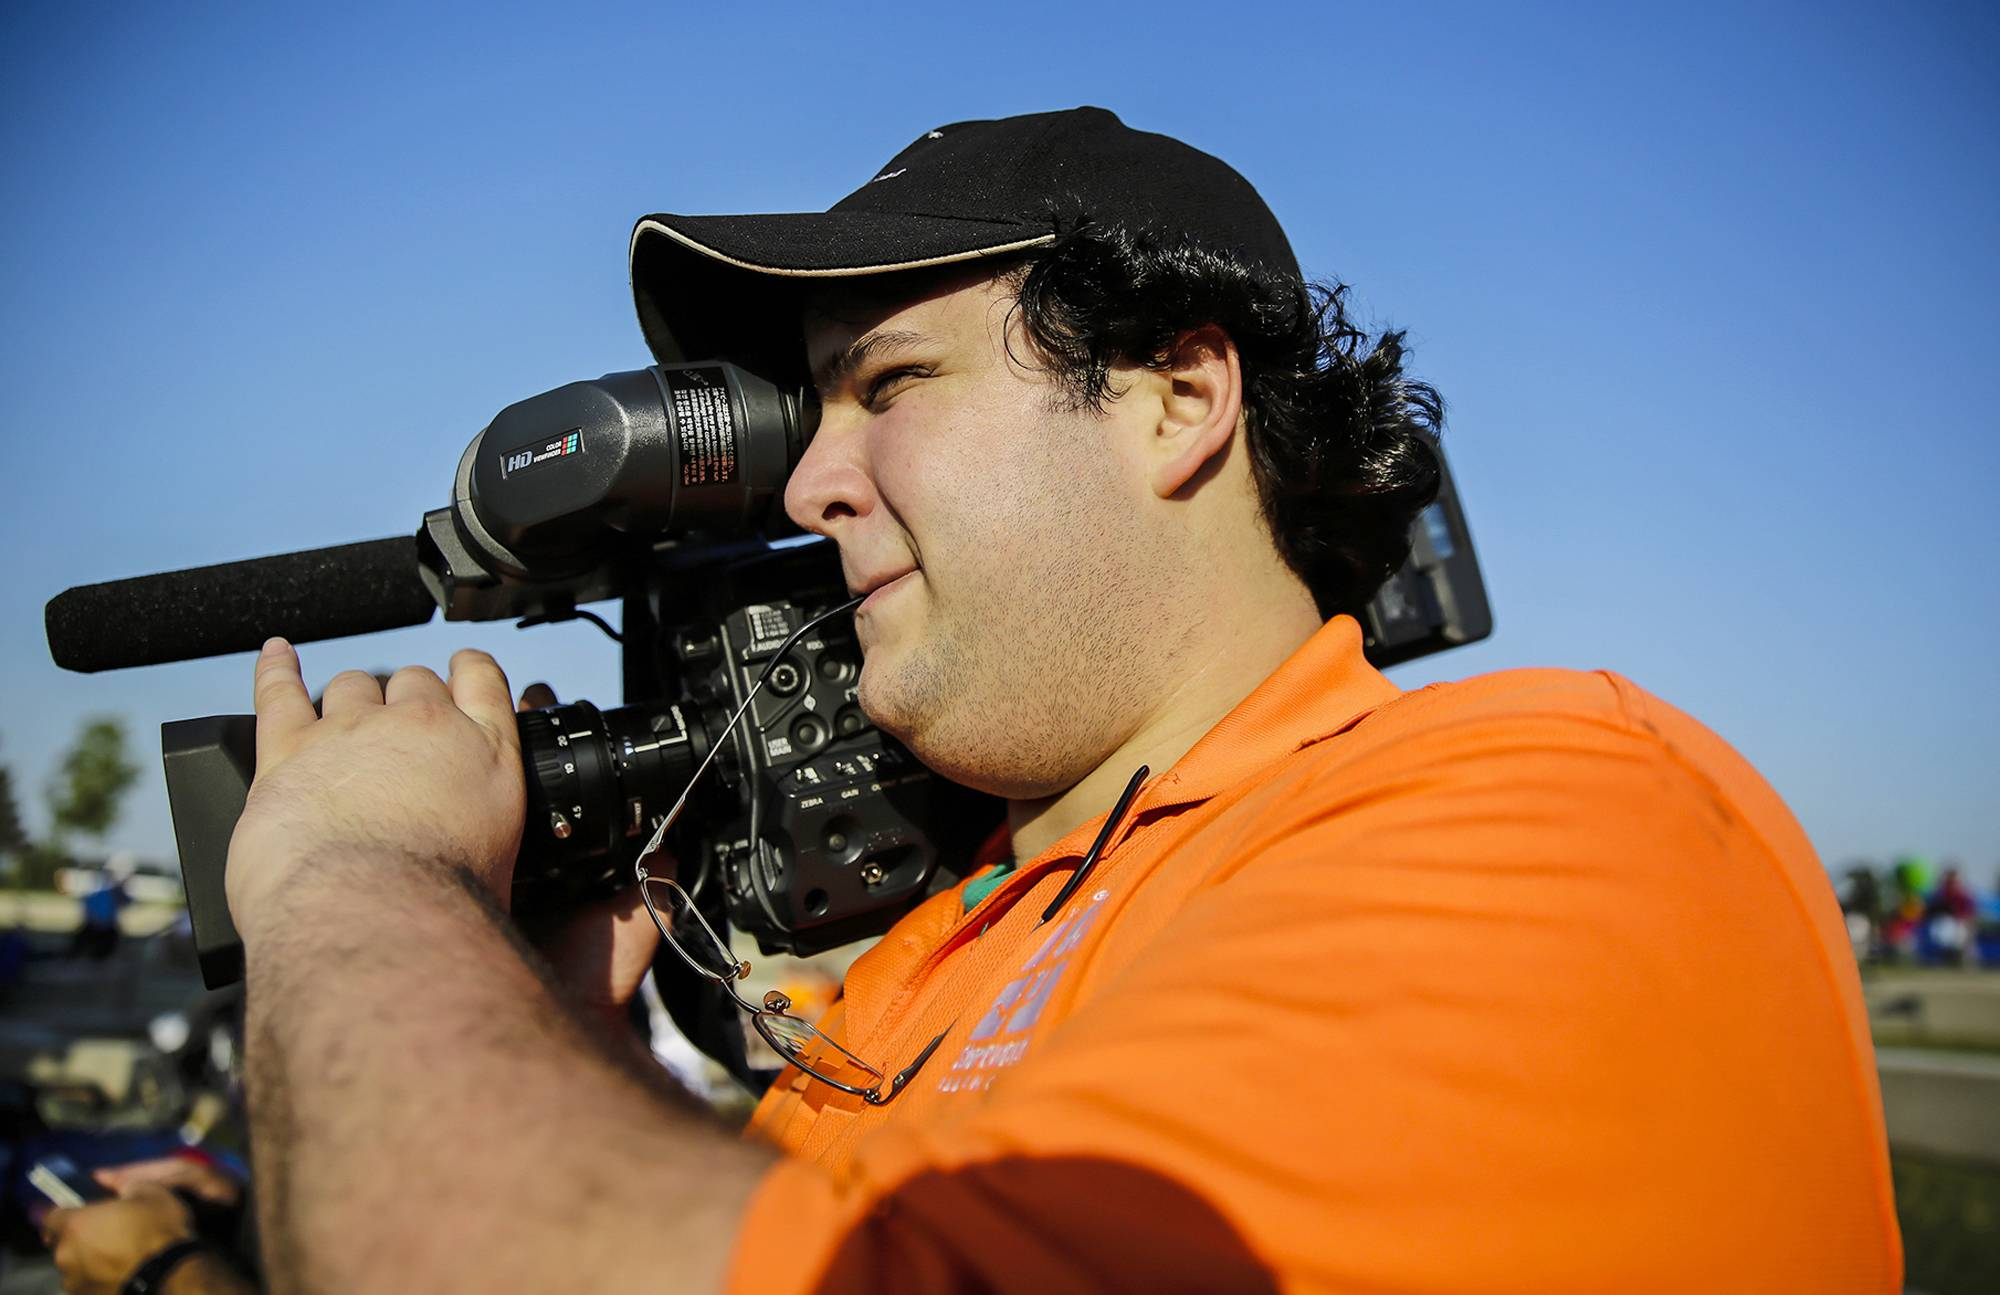 Conlan Fay films before an outdoor movie event at Towne Center Park in Shorewood.